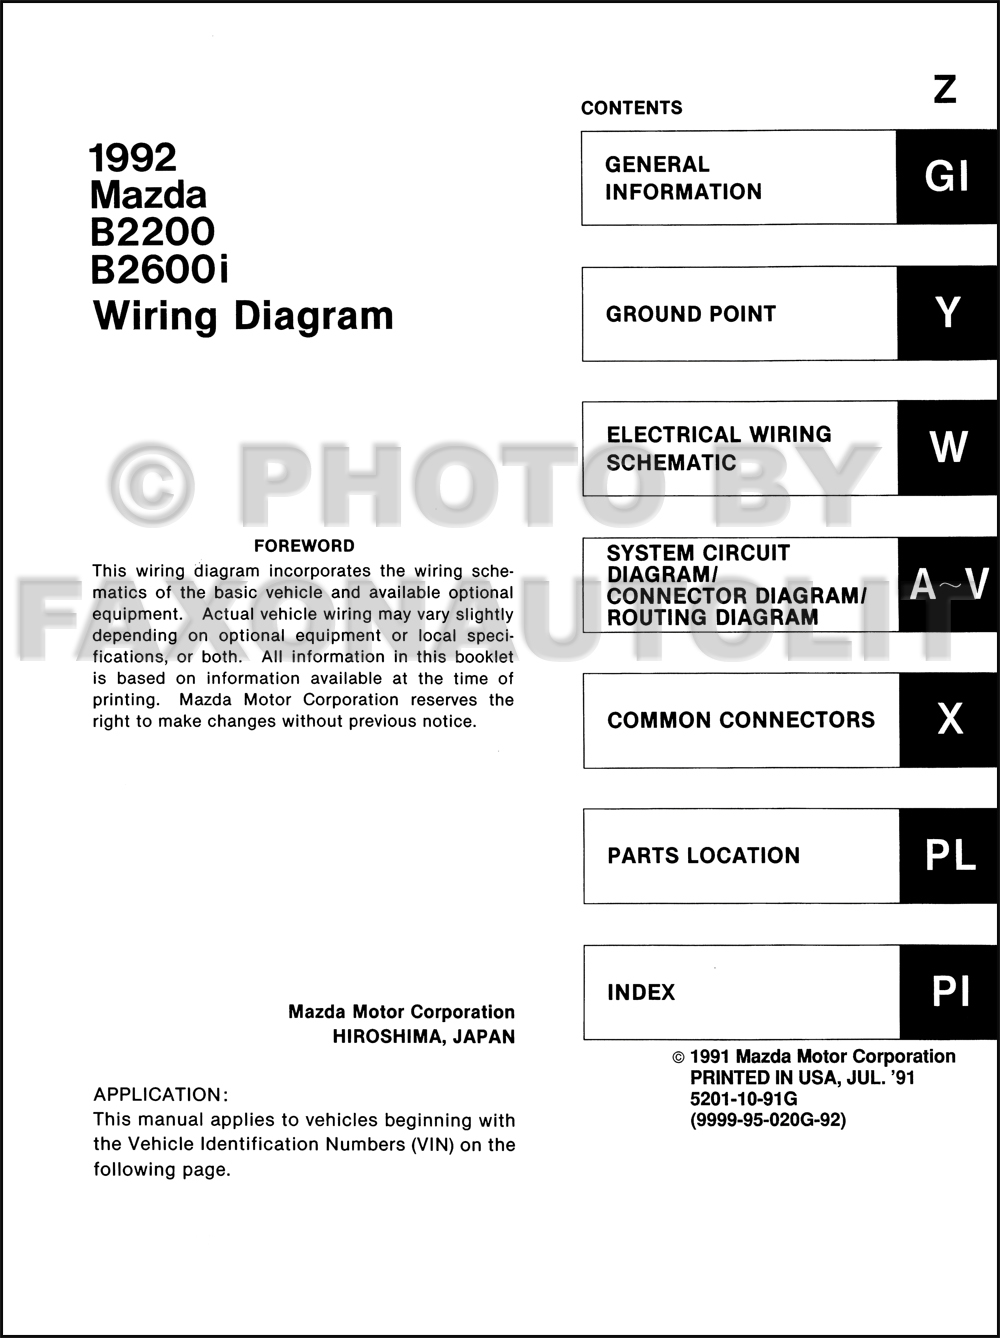 1992MazdaB2200B2600iOWD TOC 1992 mazda b2200 b2600i pickup truck wiring diagram manual original mazda b2200 wiring diagram at bakdesigns.co